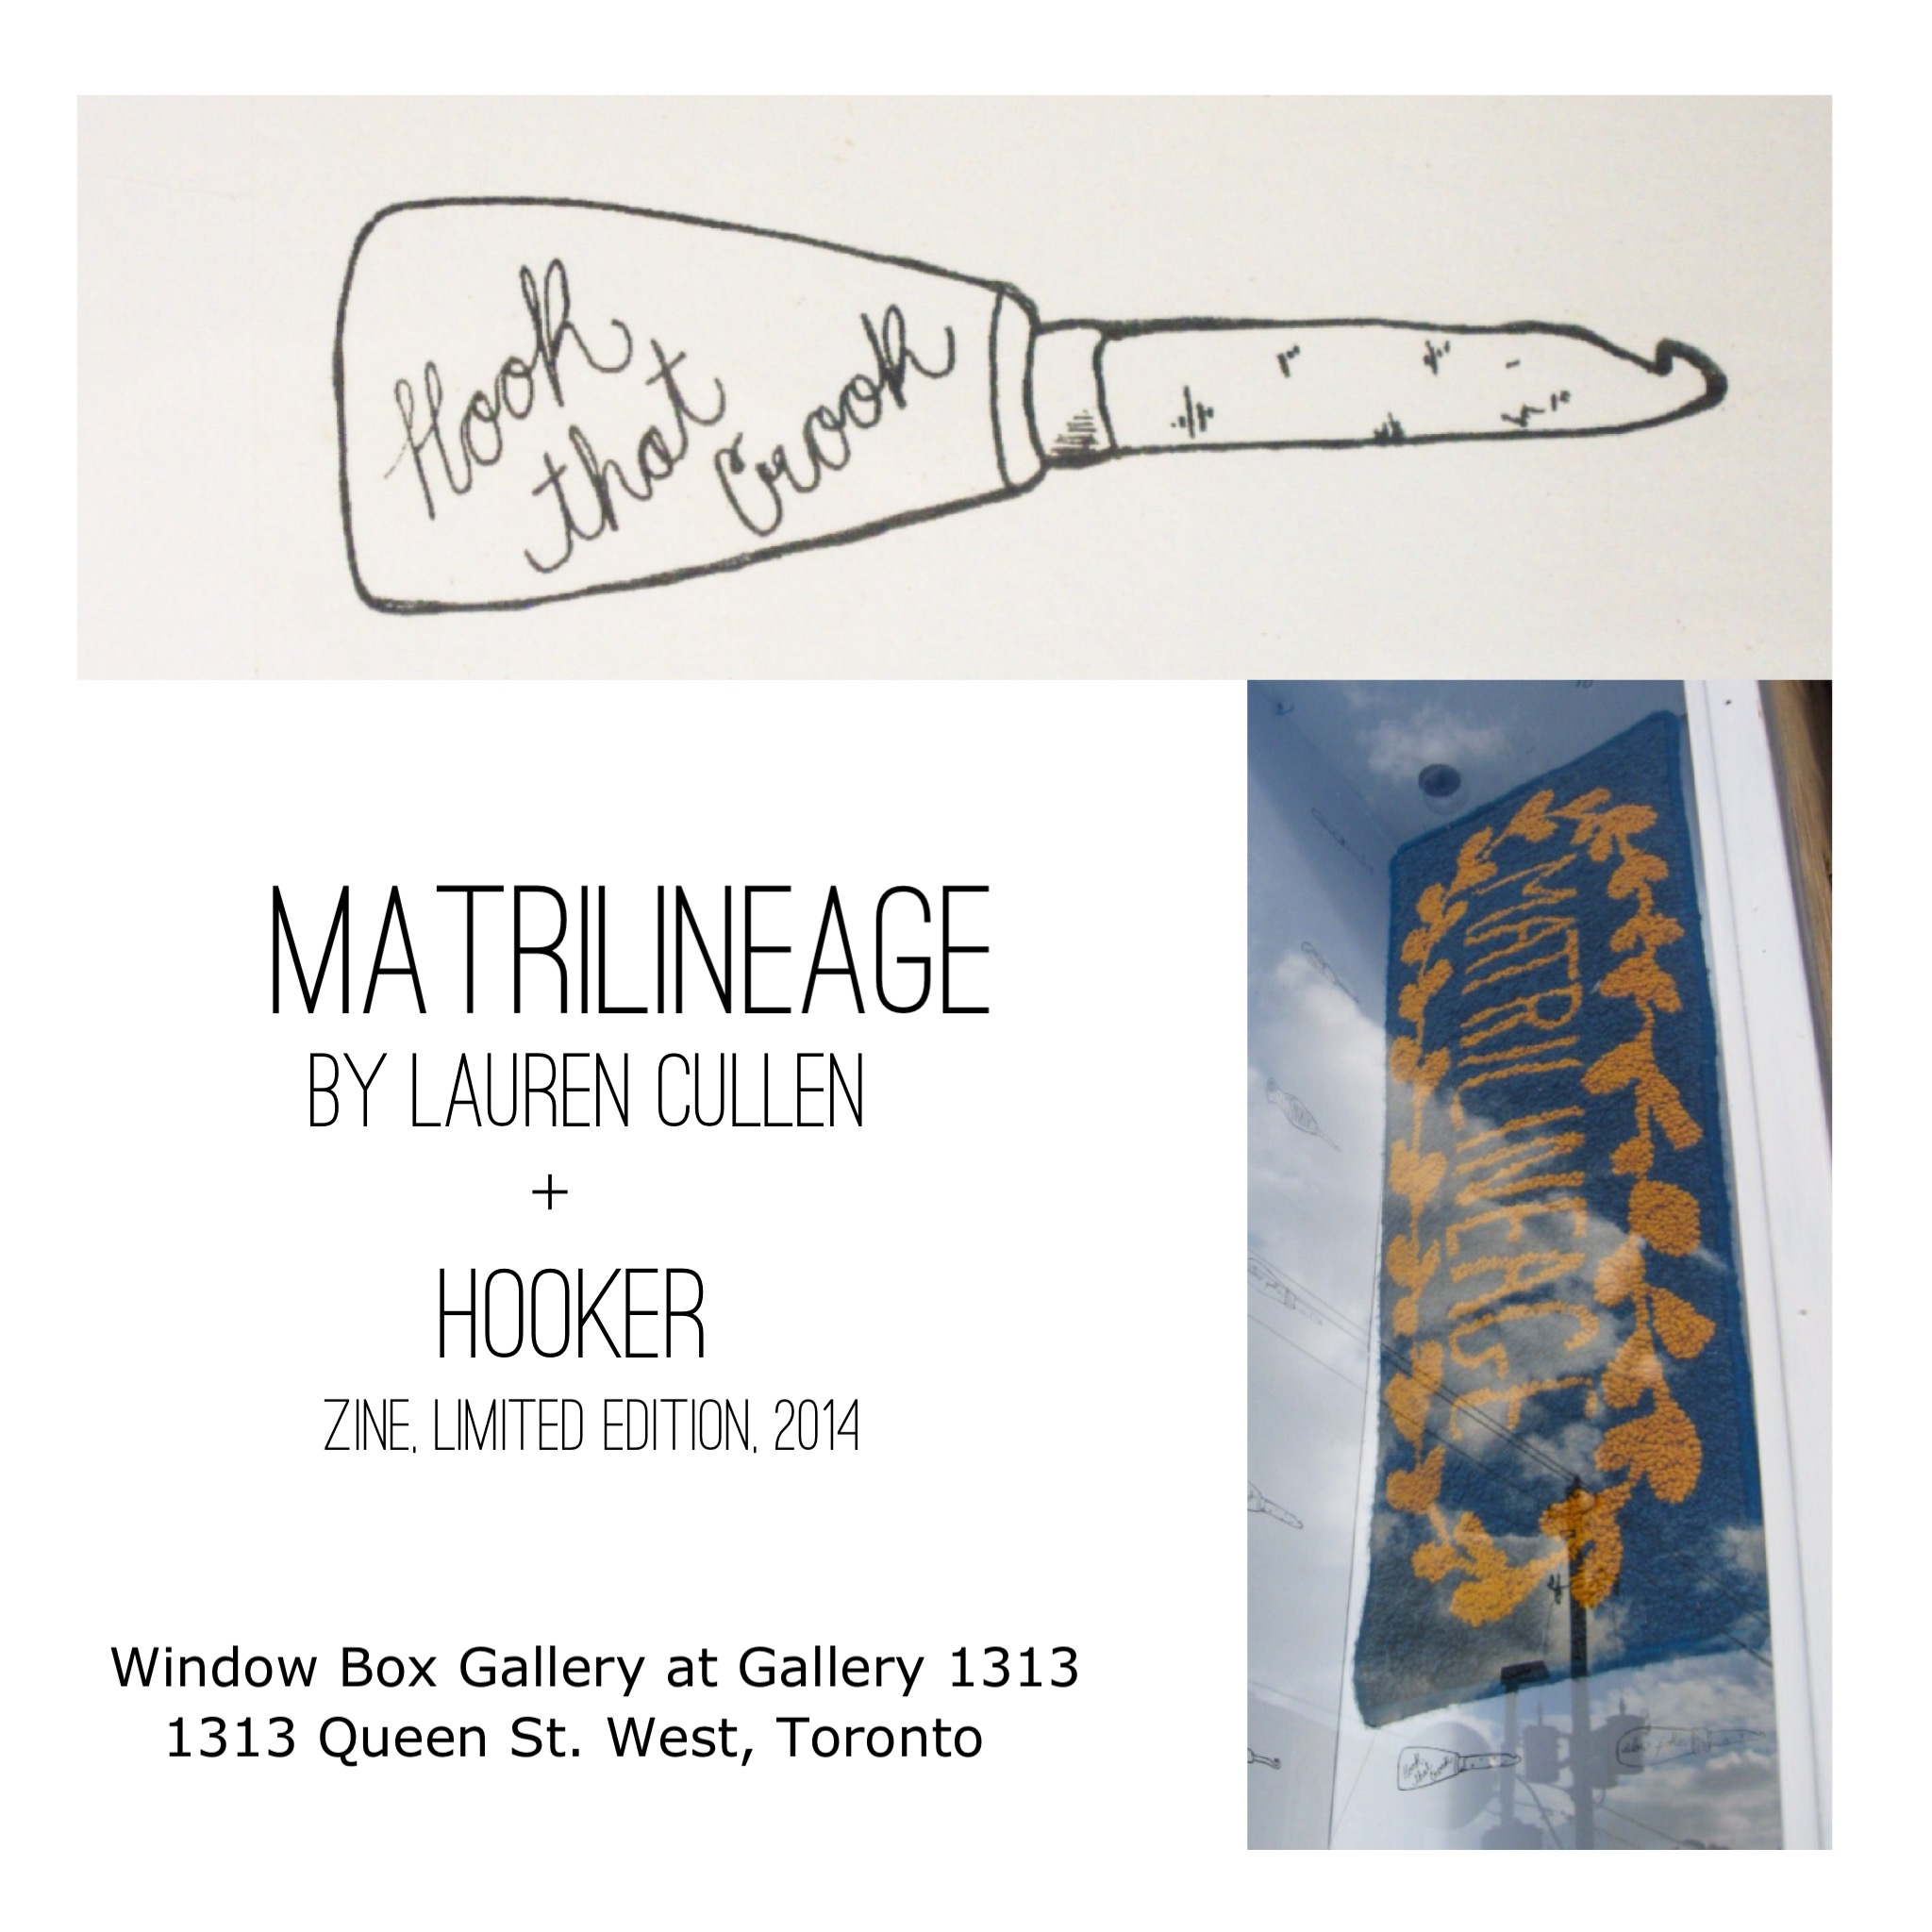 MATRILINEAGE by Lauren Cullen, Window Box Gallery